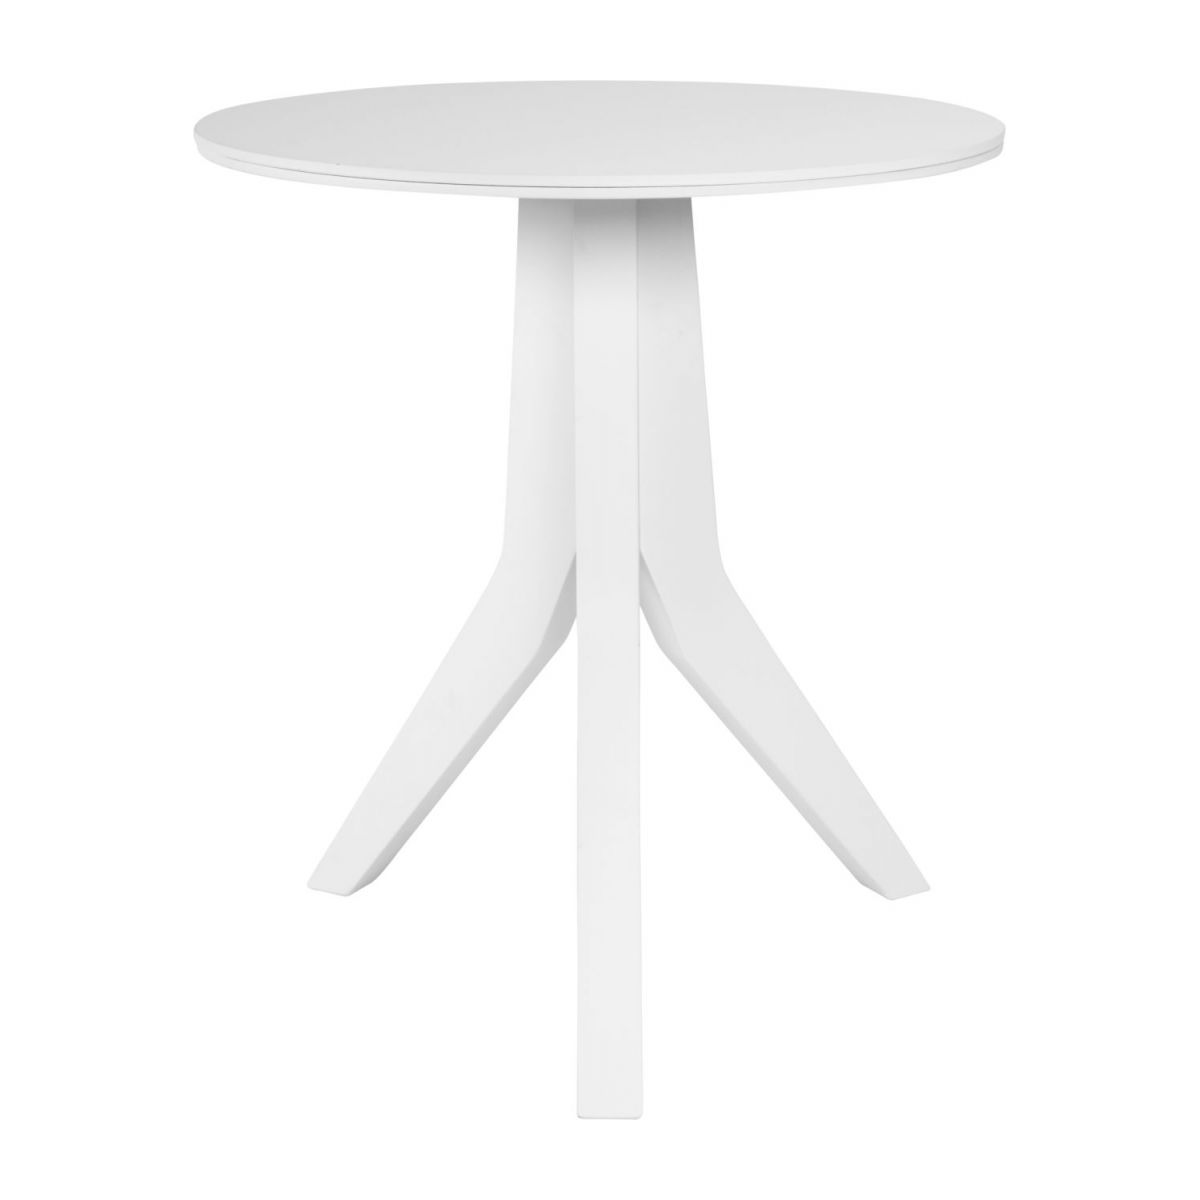 Table d'appoint en hêtre blanche n°2